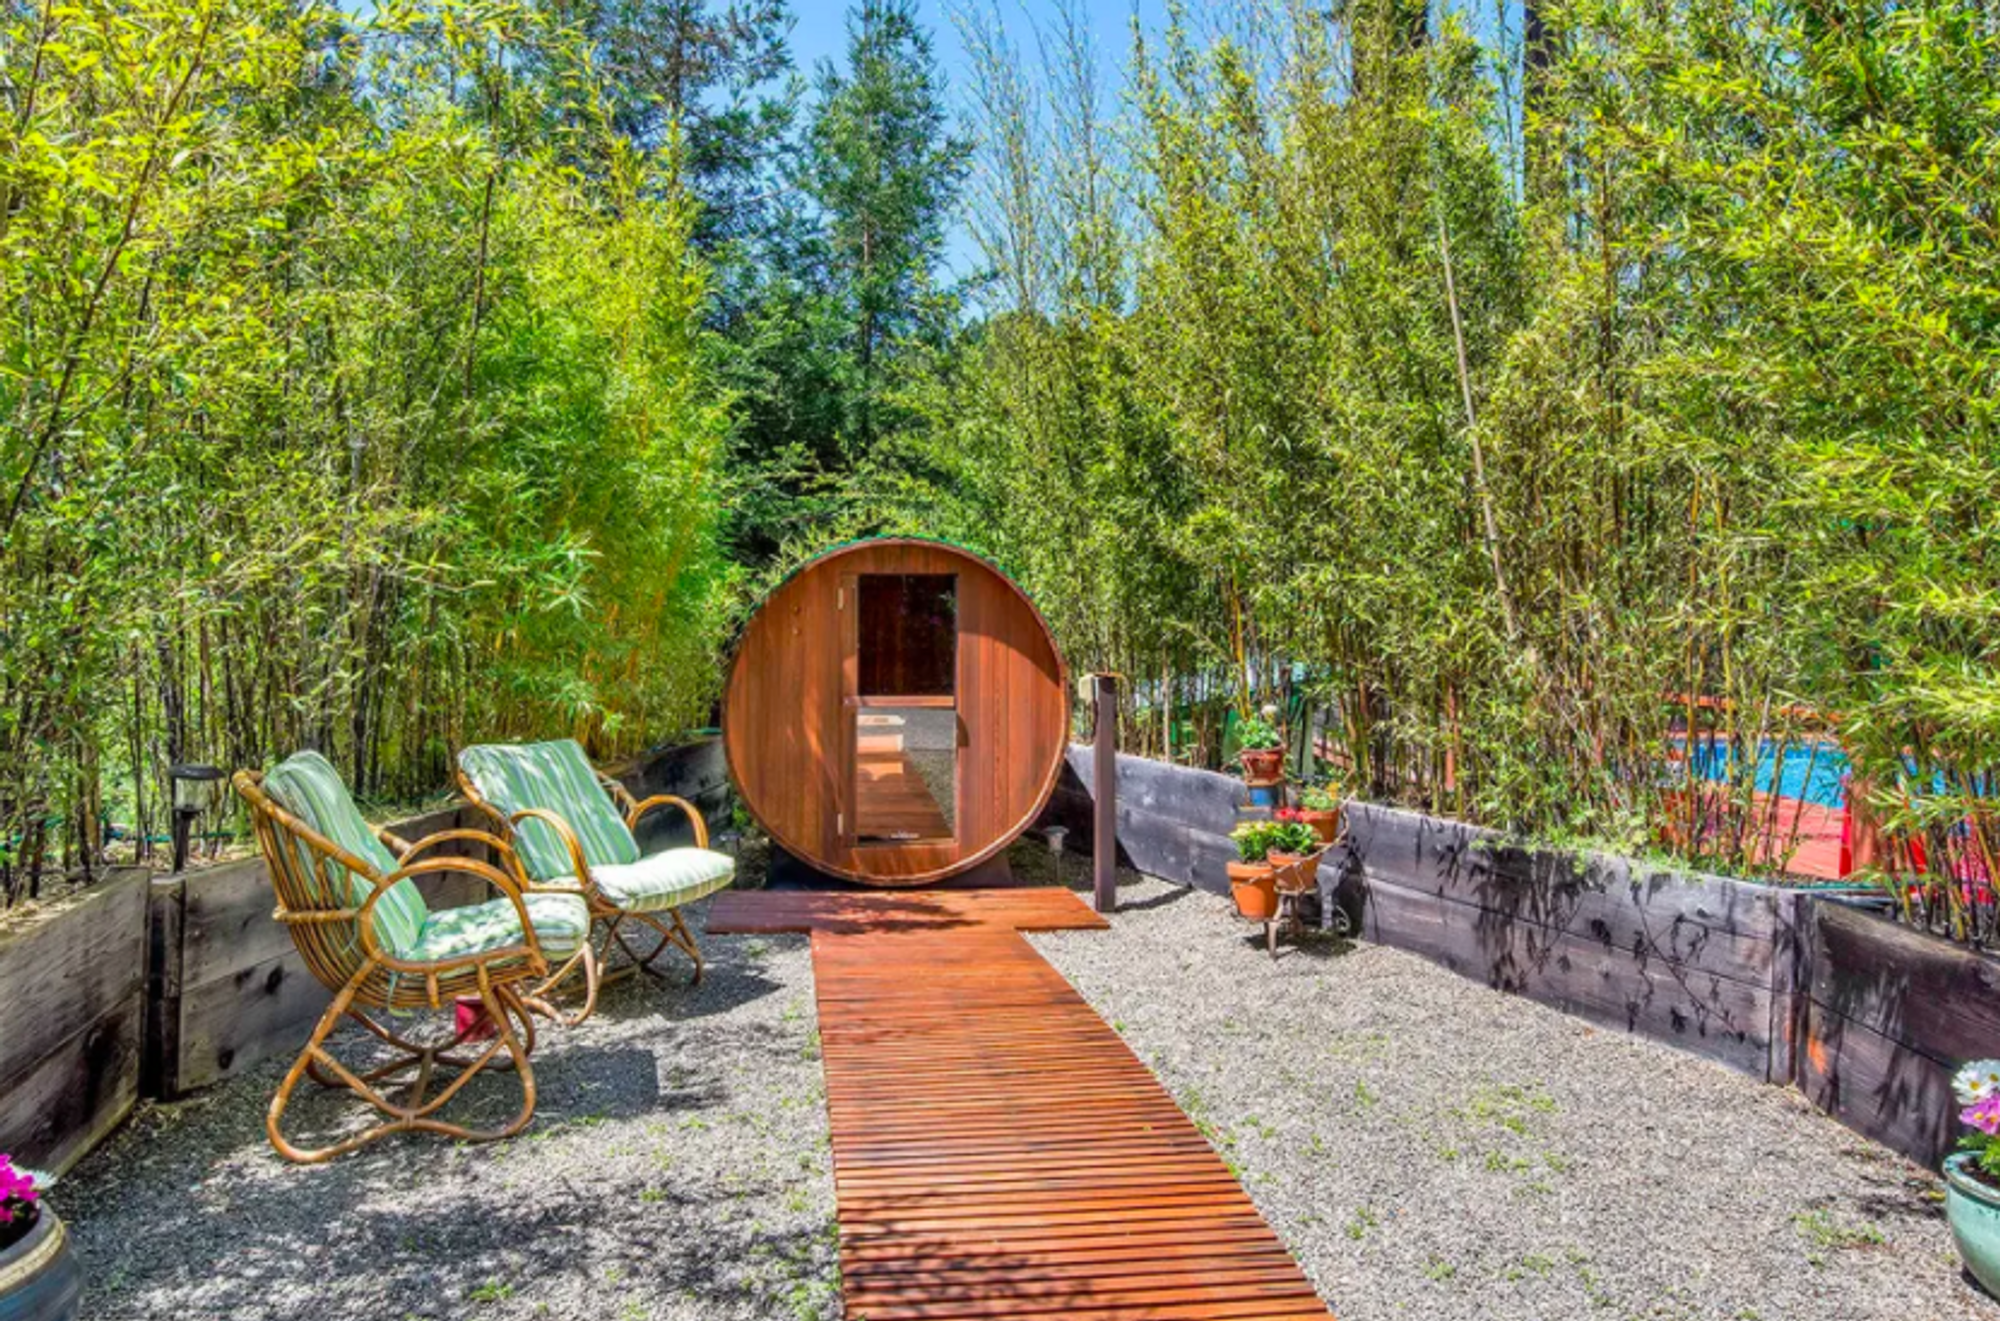 3 Funky Staycation Rentals in Marin and Sonoma